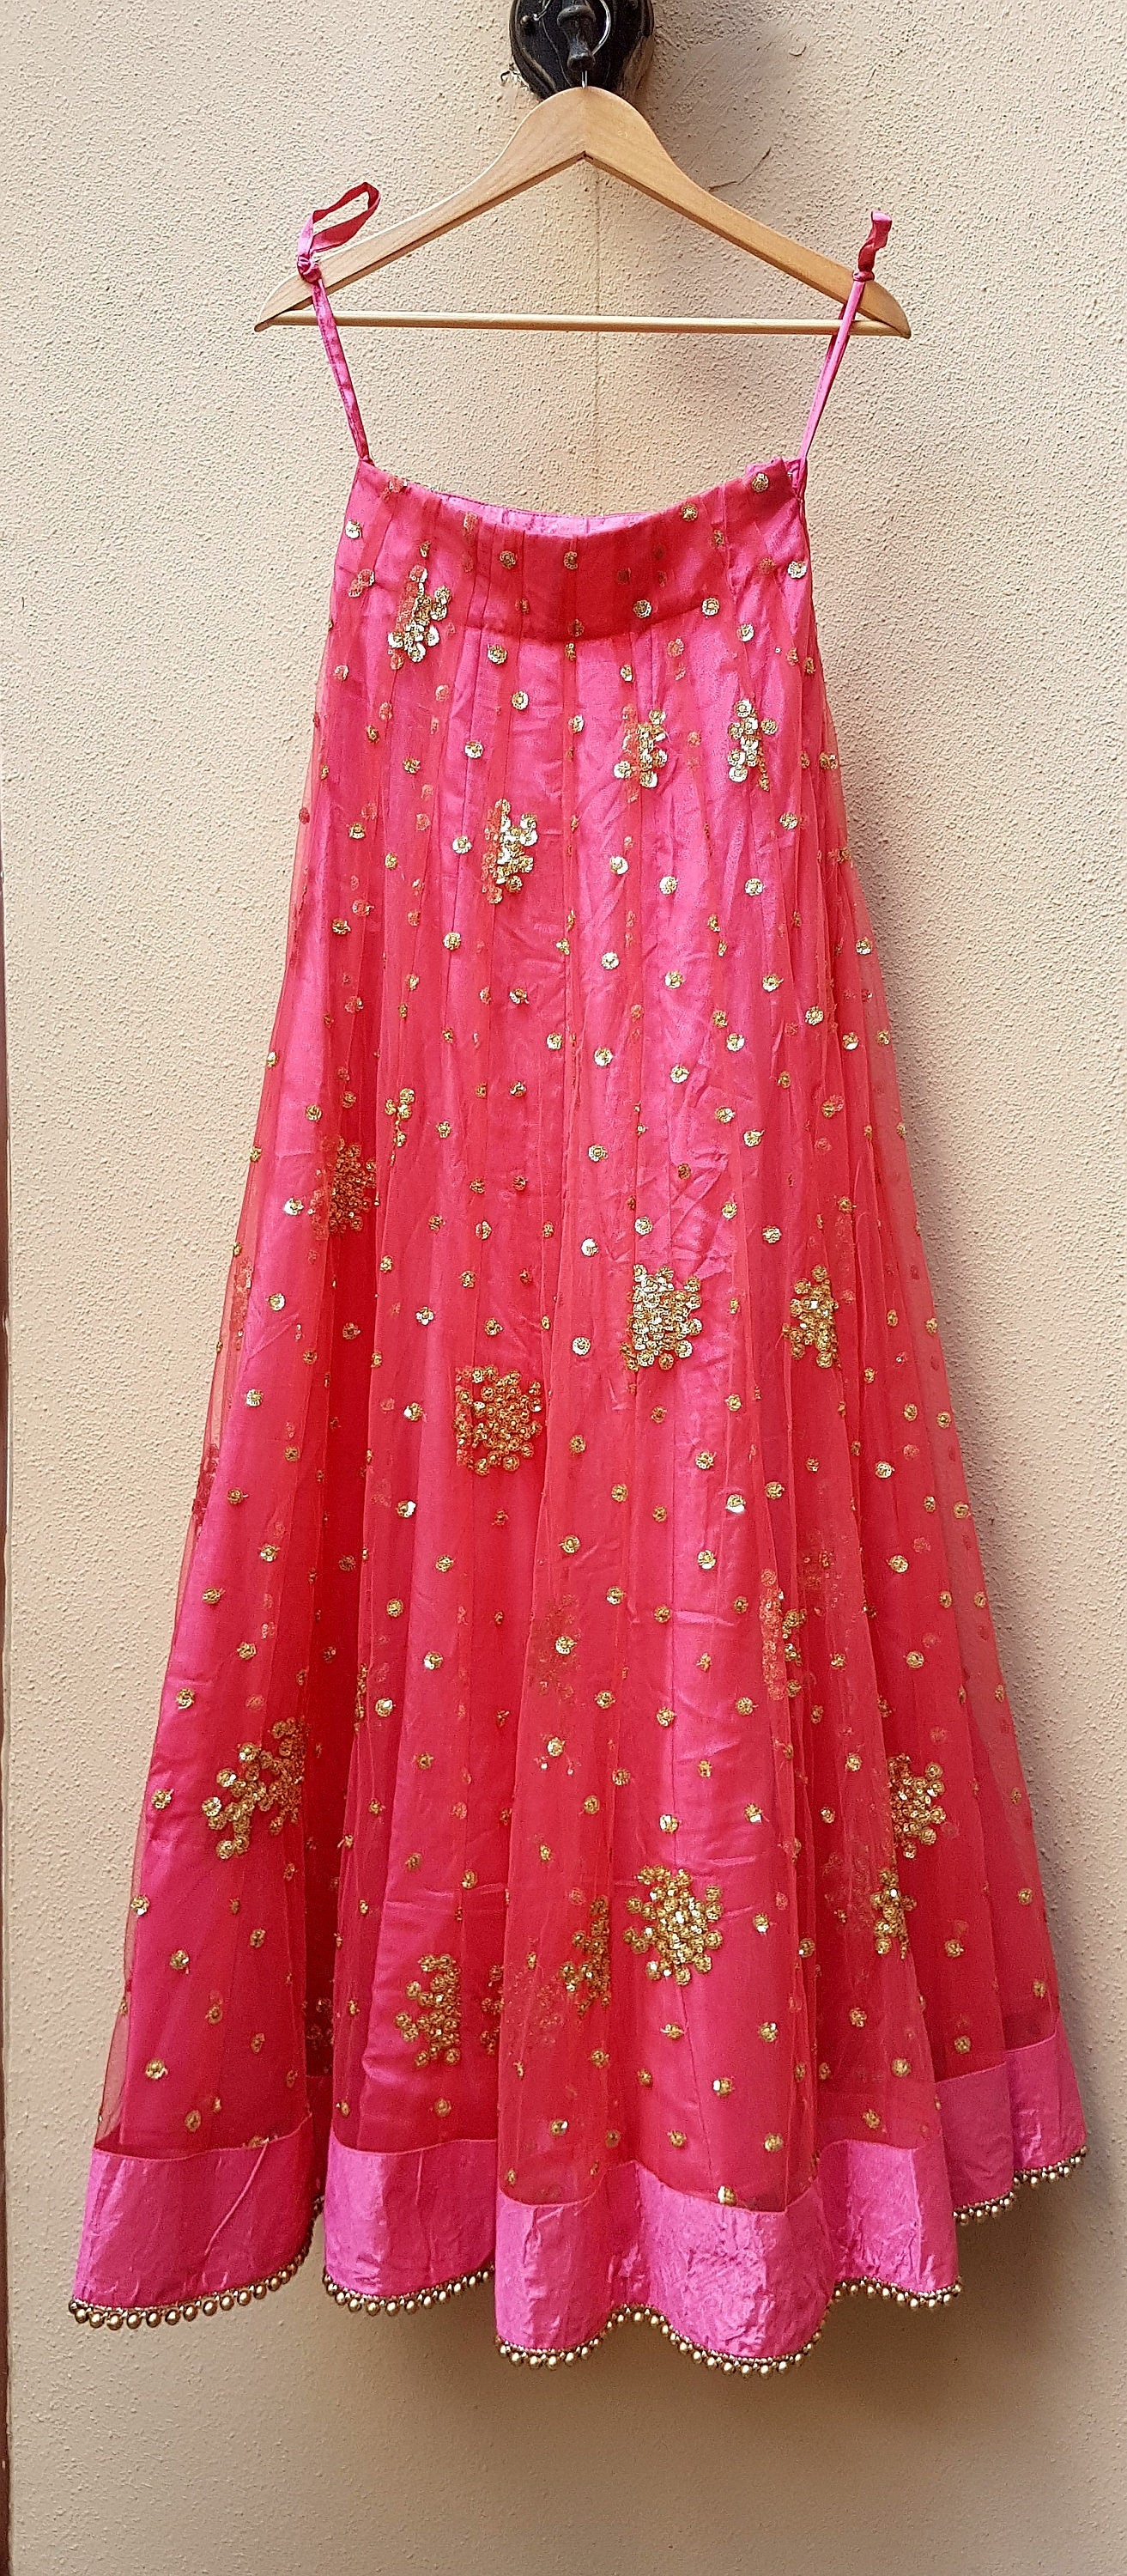 Heavy sequins embroidered Lehenga Skirt, wedding, bridal, party wear, Indian Pakistani Wear - Pink Chunari